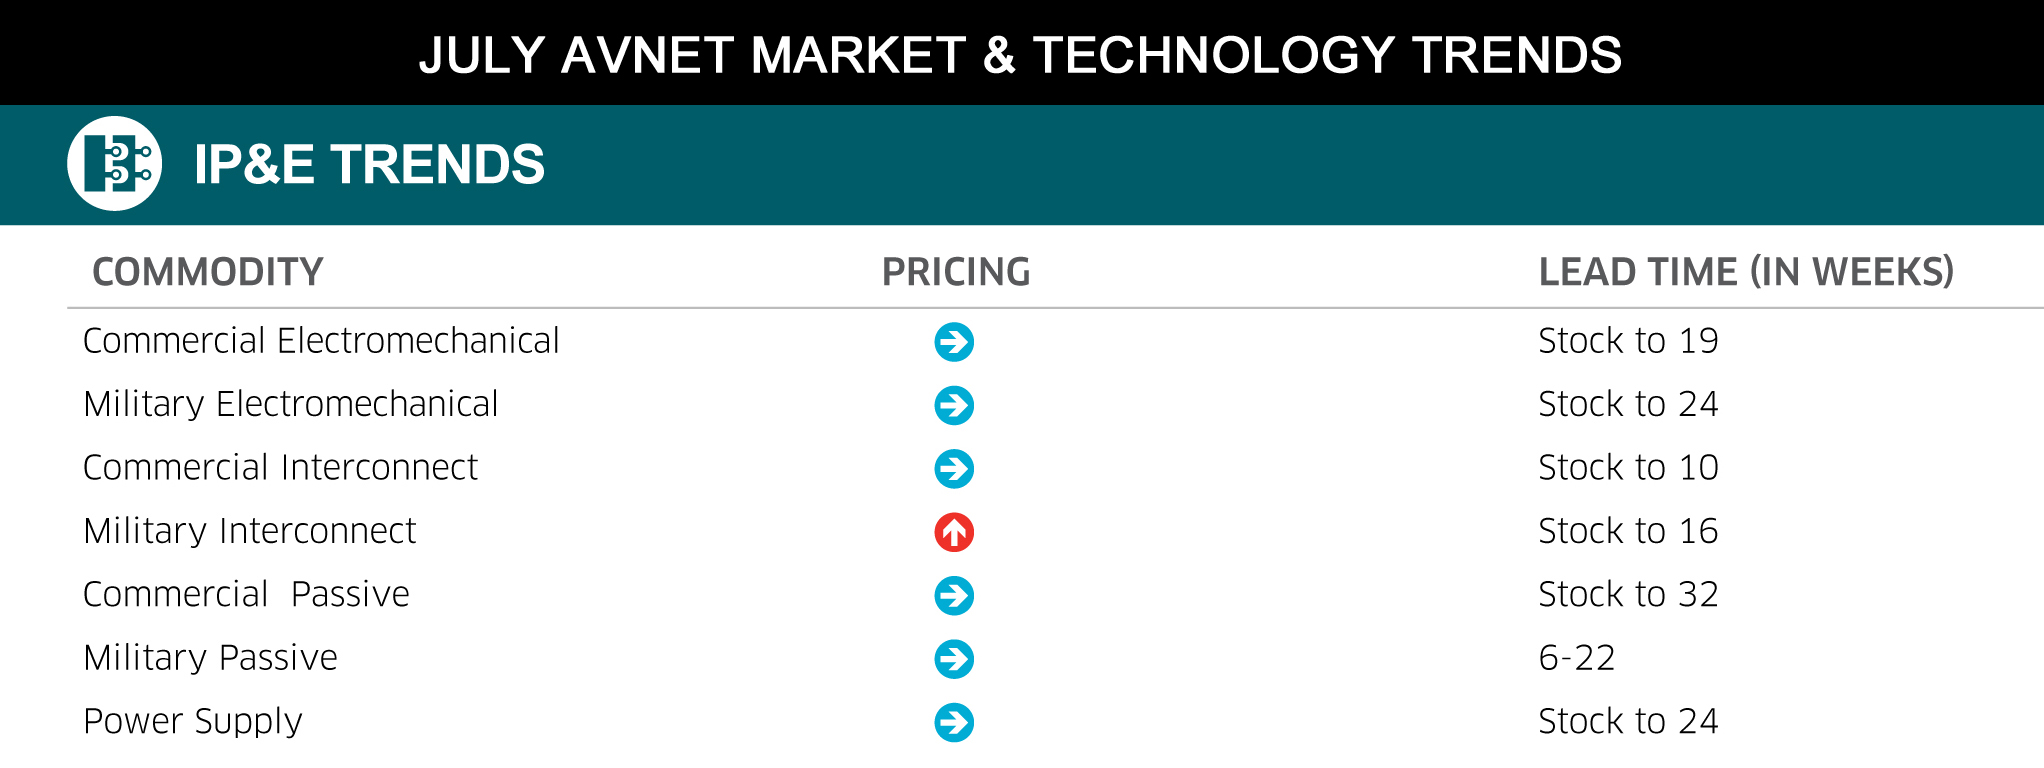 IP&E Lead Times, Pricing Stable